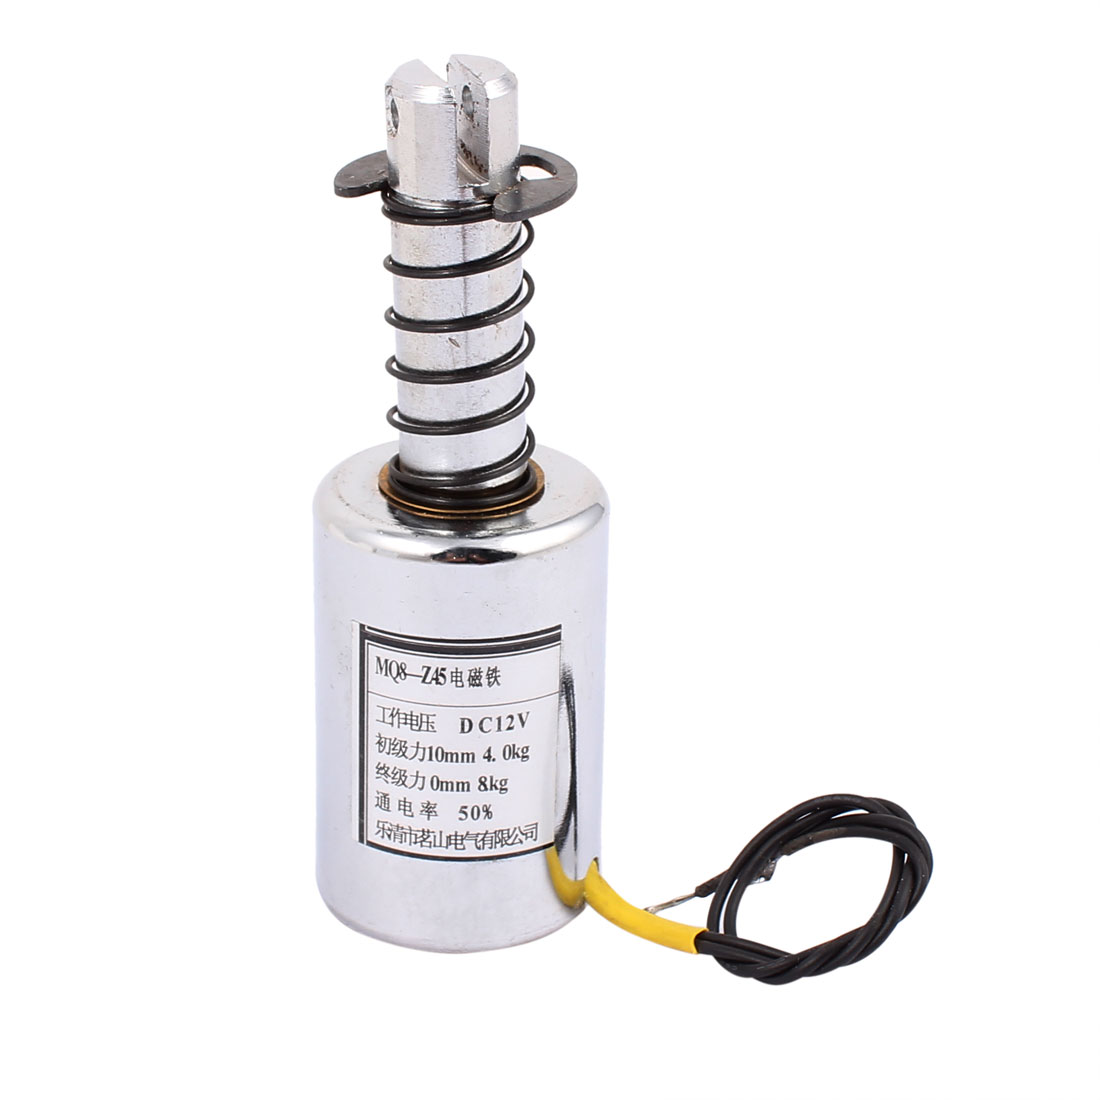 MQ8-Z45 DC 12V 10mm 4-8Kg Motion Cirect Current Solenoid Electromagnet